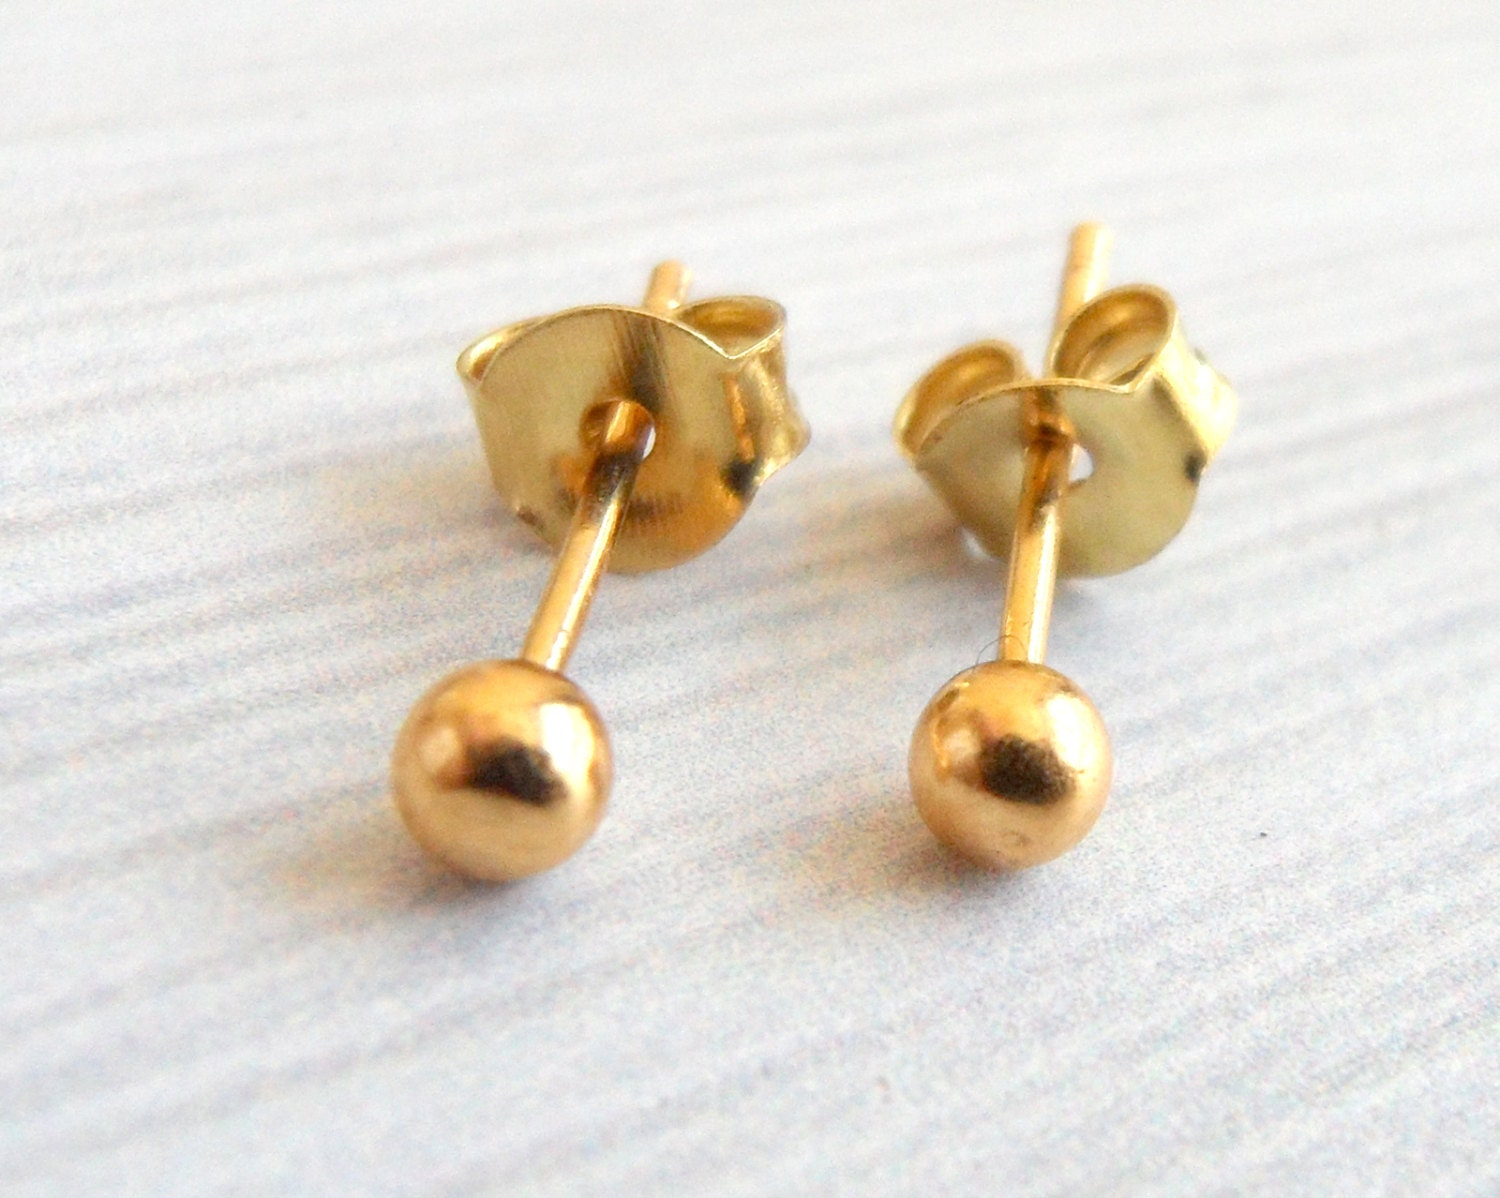 ear pin earring studs double piercing stud second earrings